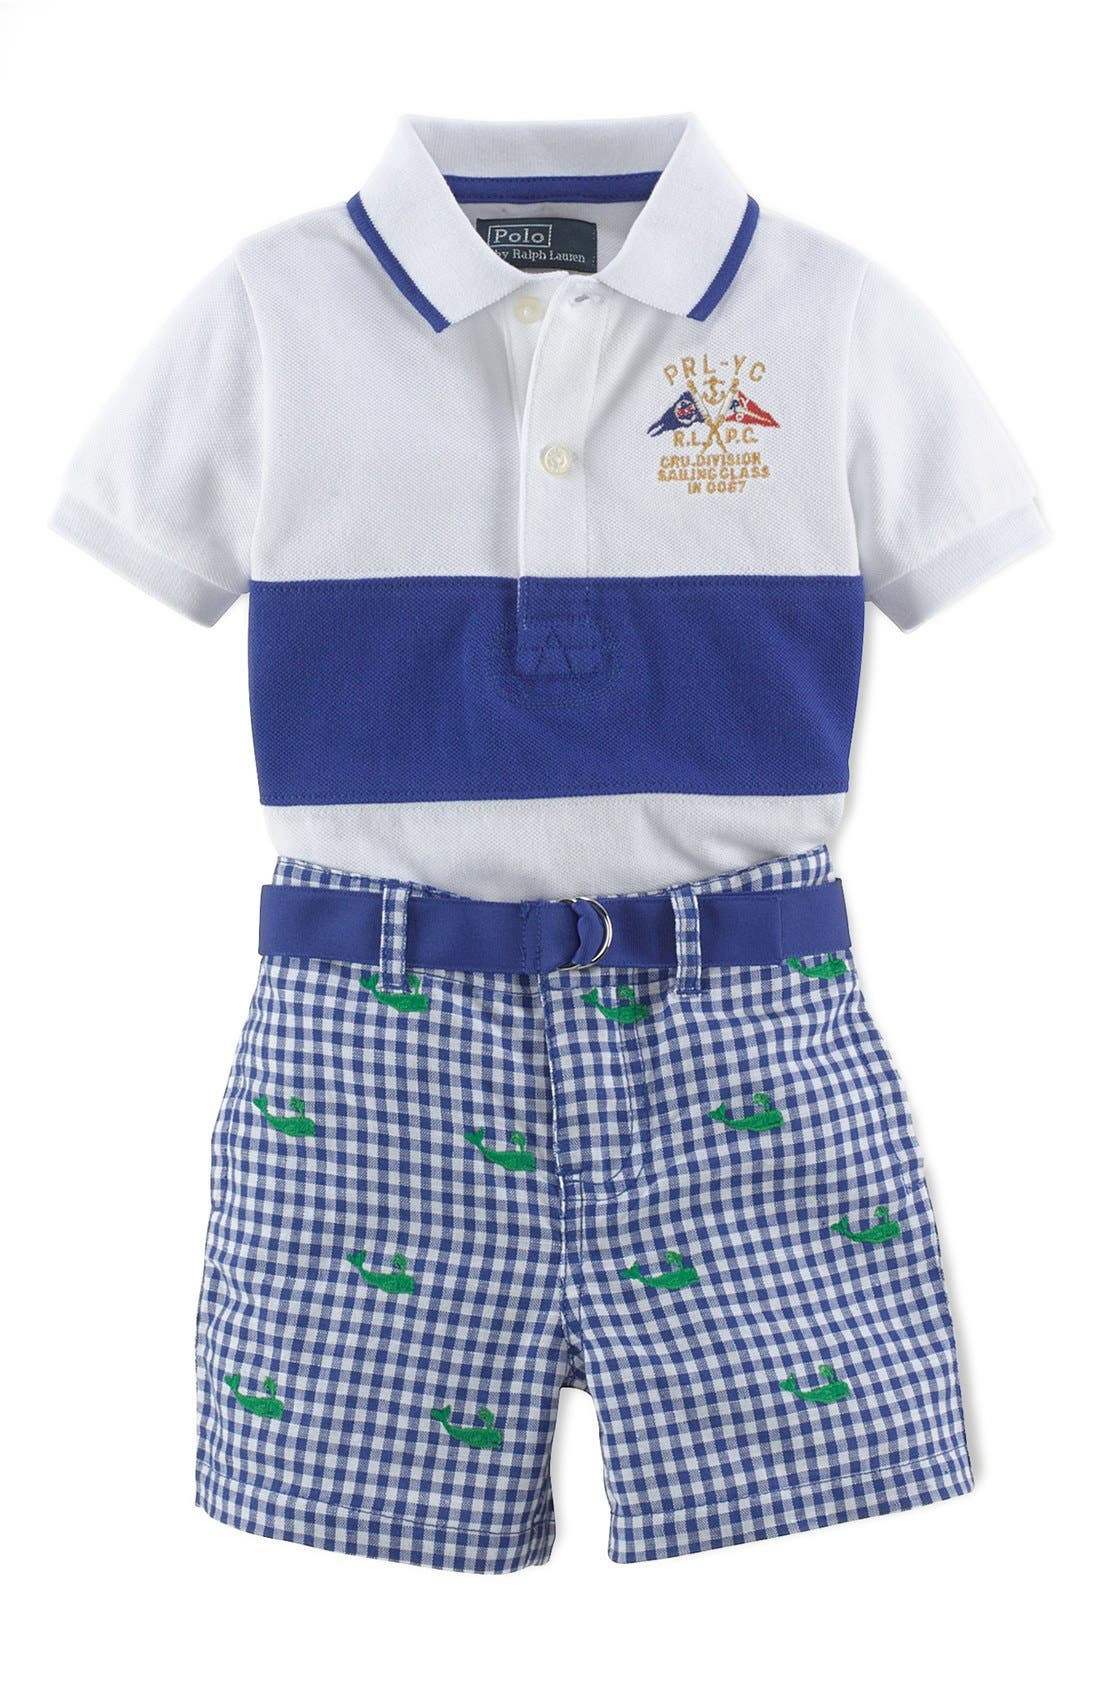 Alternate Image 1 Selected - Ralph Lauren Polo & Shorts (Baby Boys)